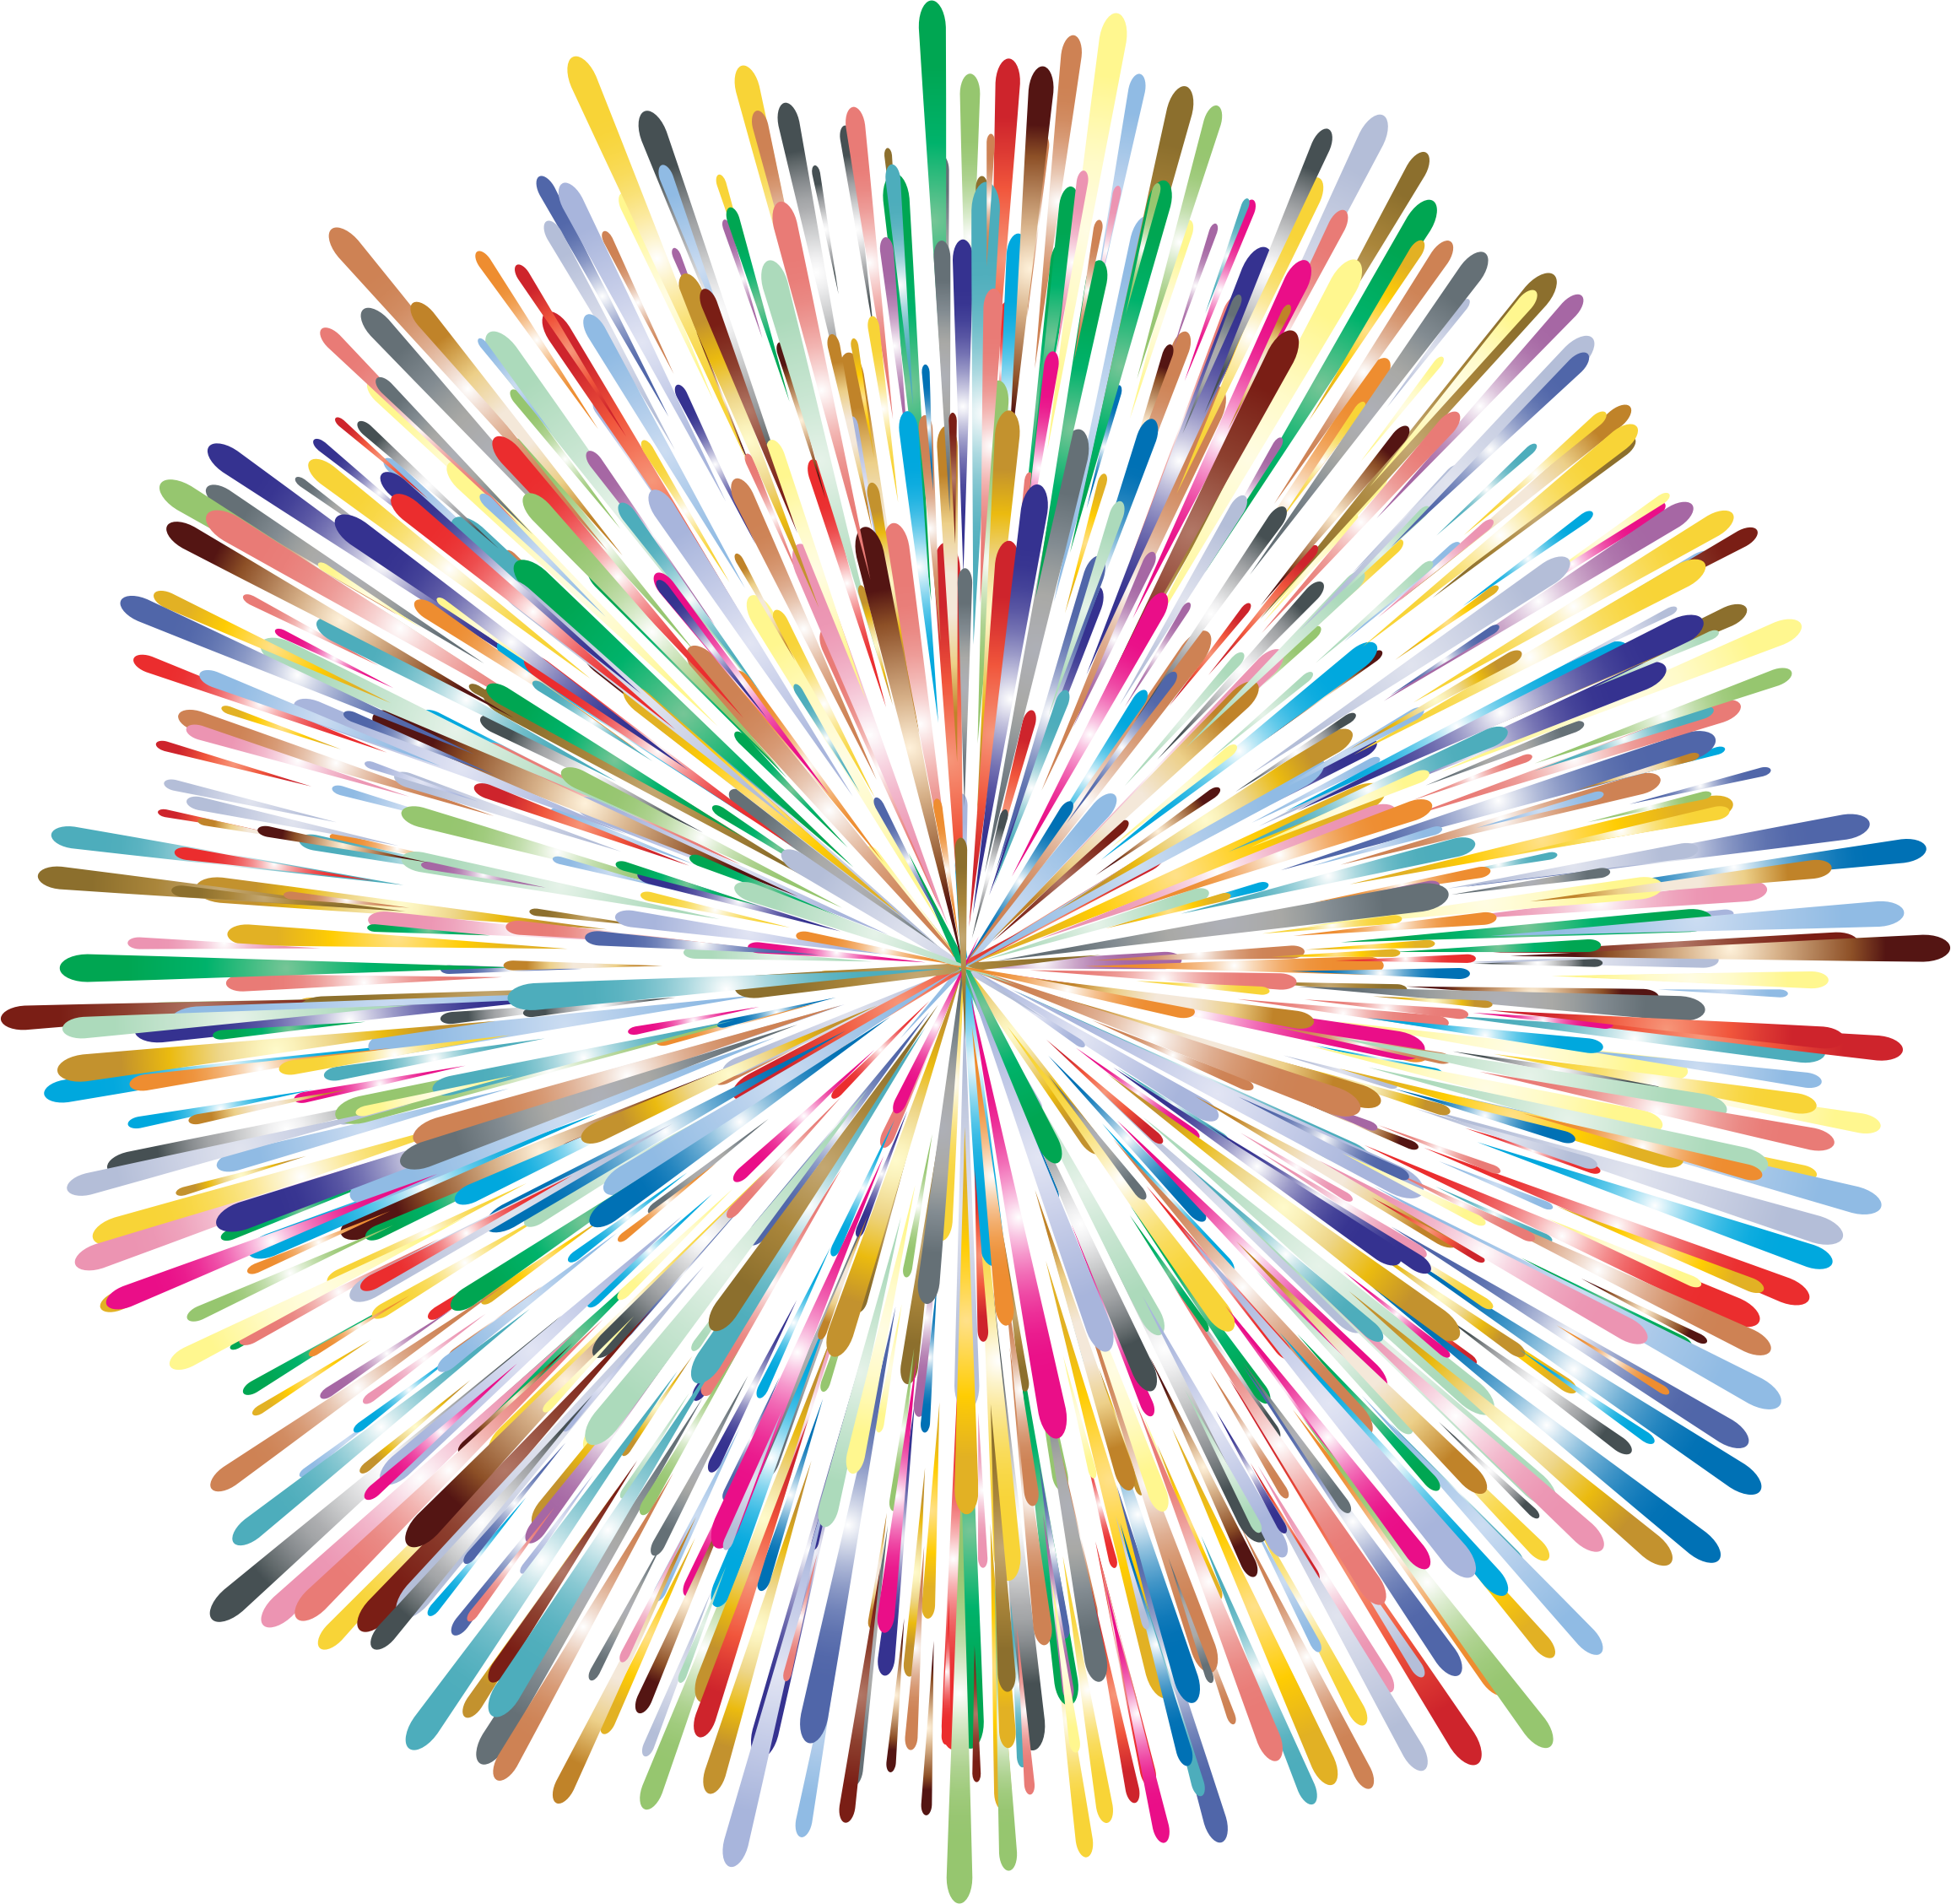 Prismatic no icons png. Clipart fireworks black background